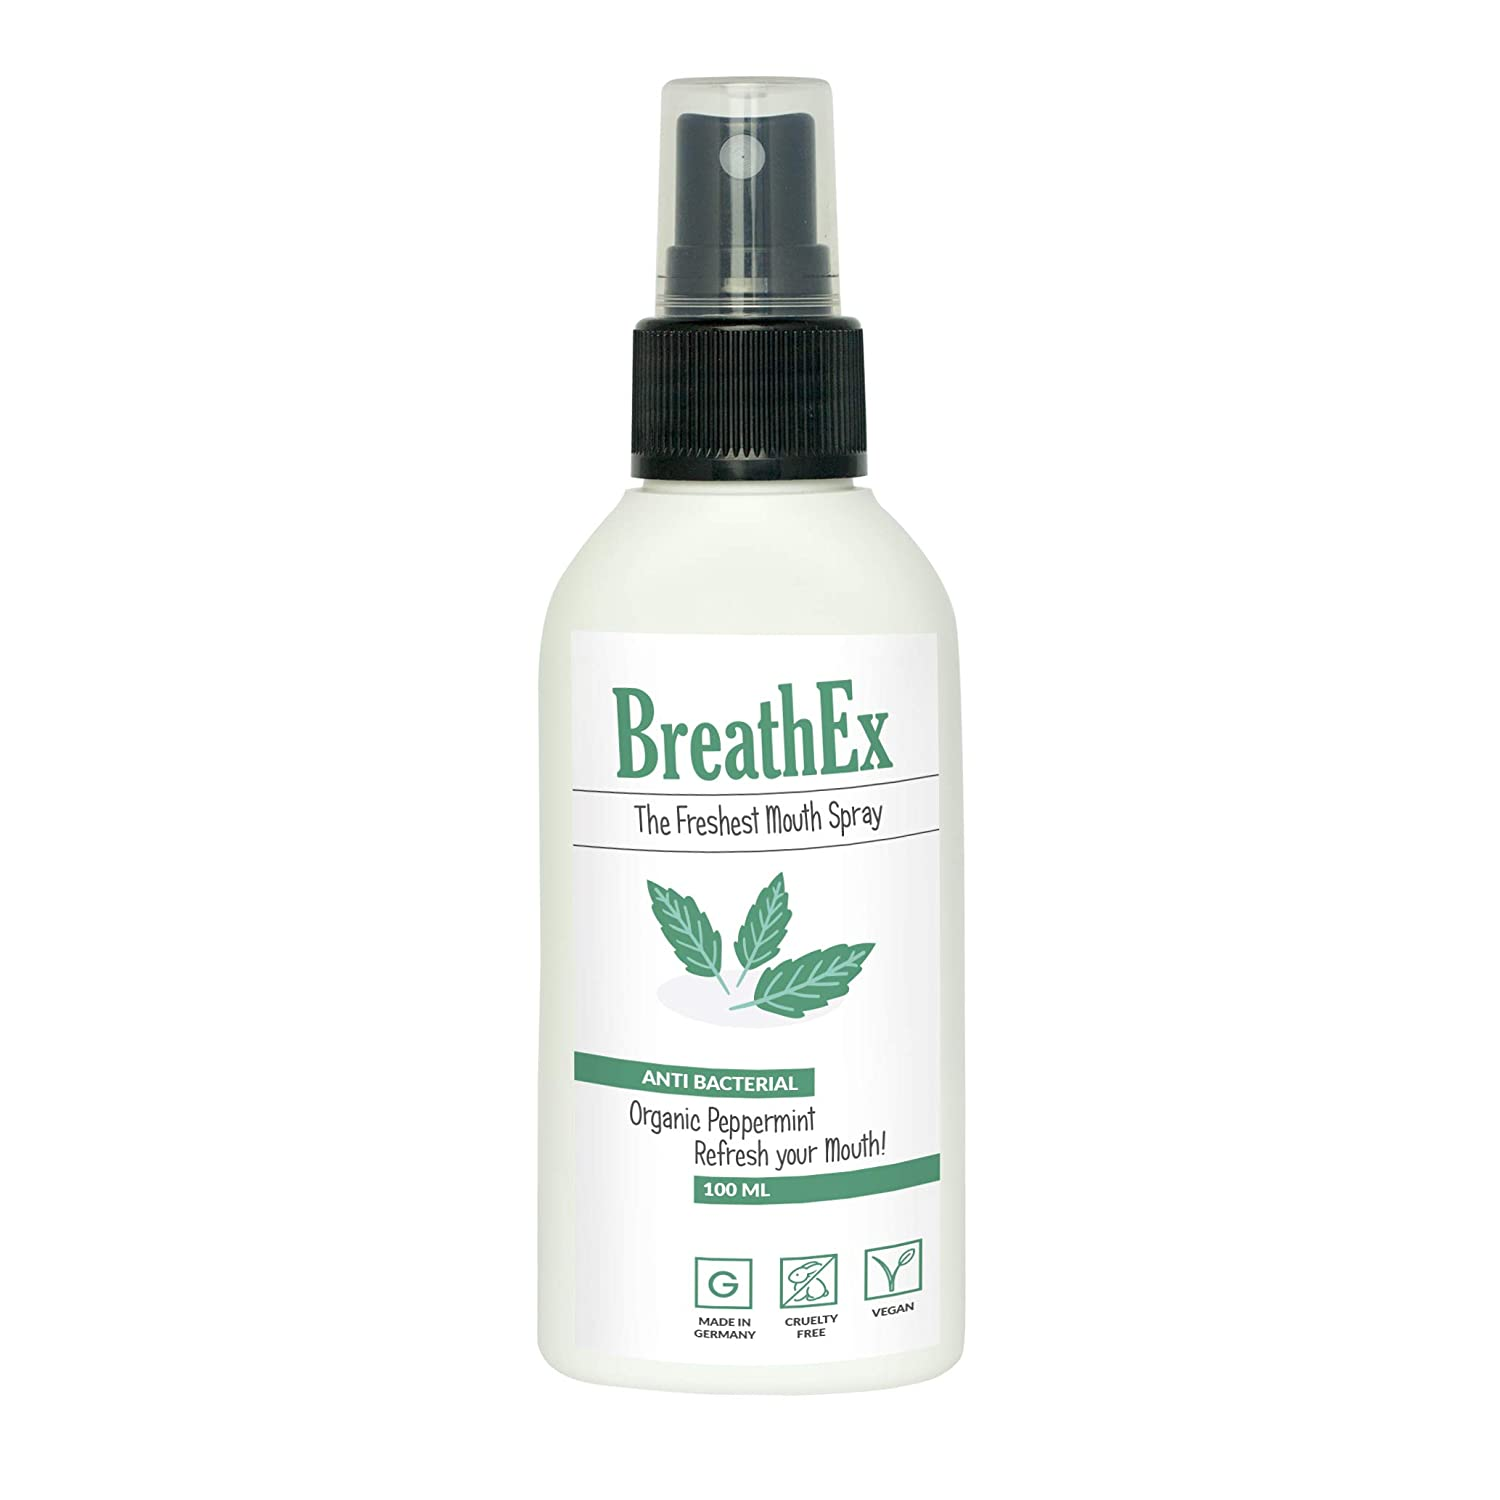 The Freshest Mouth Spray by BREATHEX | 100ml | Natural & Fresh Breath spray with organic peppermint | Antibacterial formula which is long lasting | Alternative to mouthwash and Bad Breath Treatment